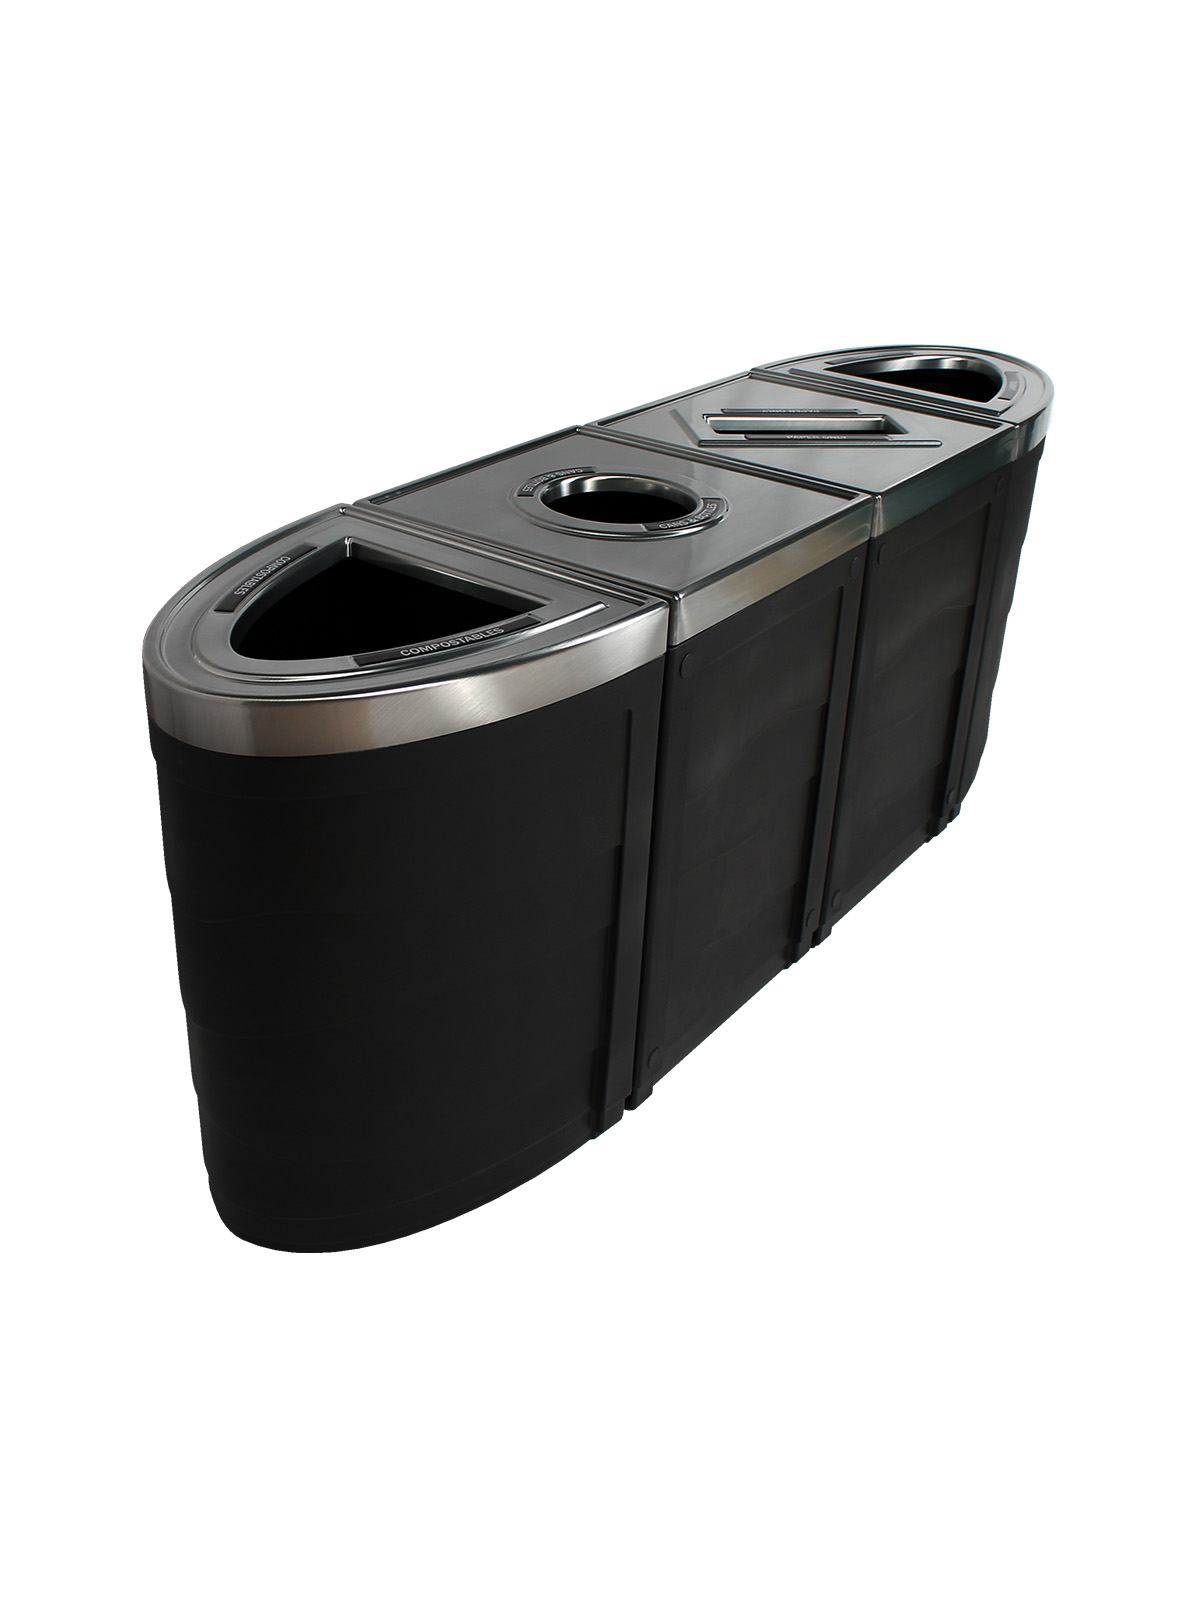 EVOLVE - Quad - Compostables-Cans & Bottles-Paper-Landfill - Full-Circle-Slot-Full - Black title=